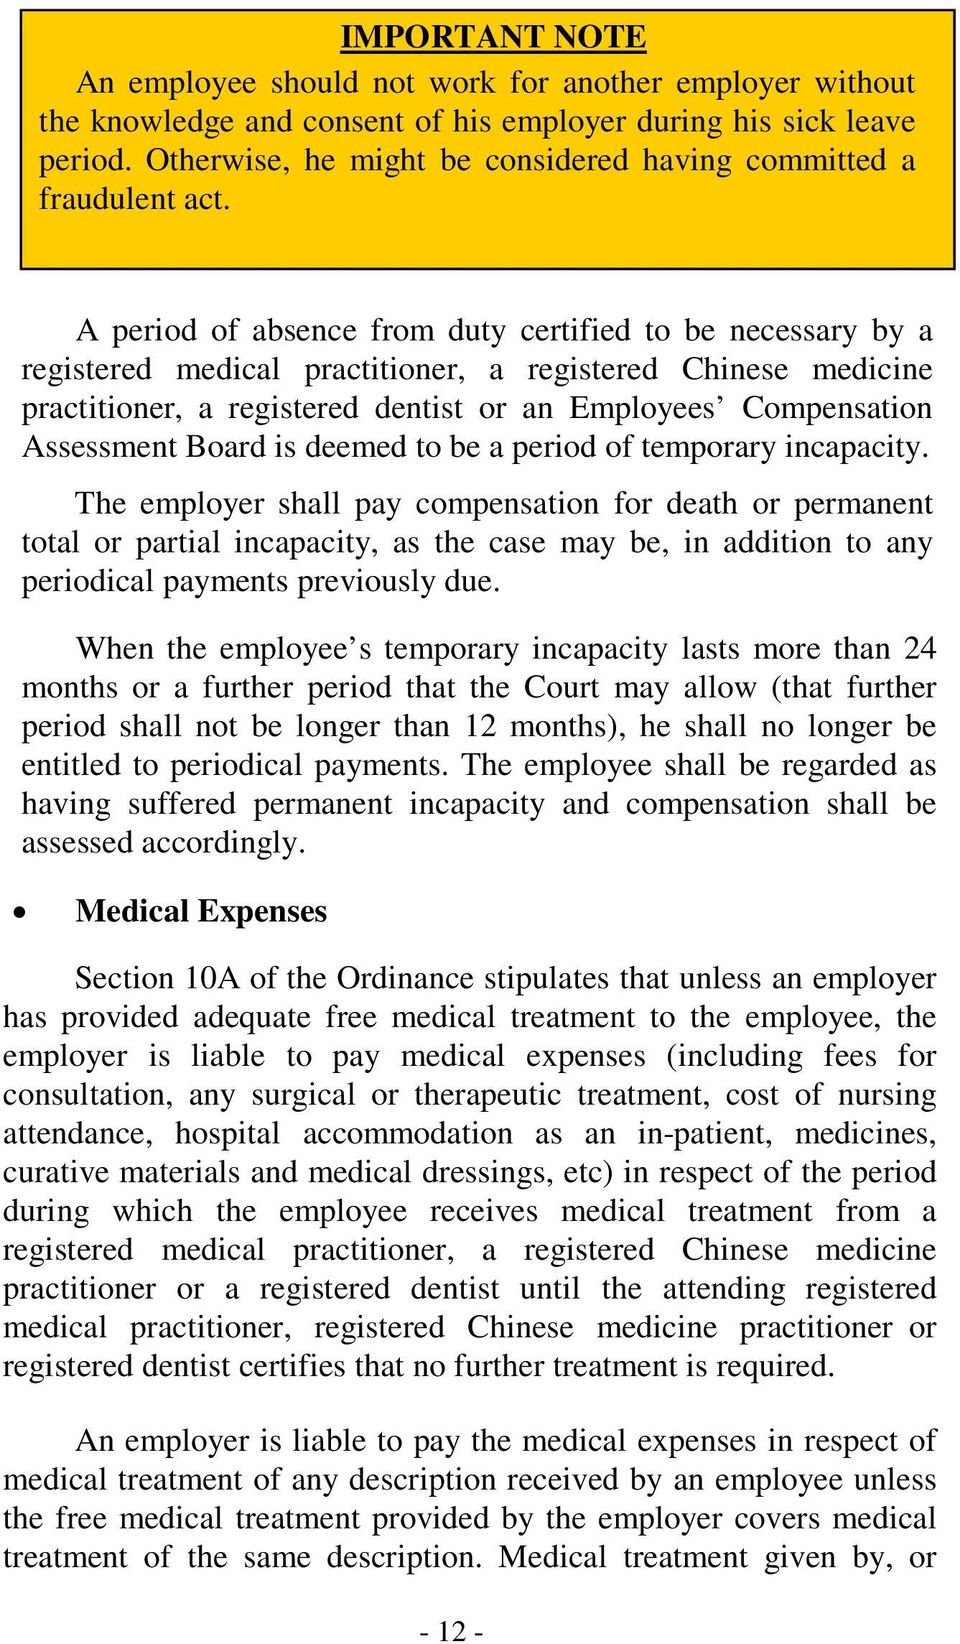 A period of absence from duty certified to be necessary by a registered medical practitioner, a registered Chinese medicine practitioner, a registered dentist or an Employees Compensation Assessment